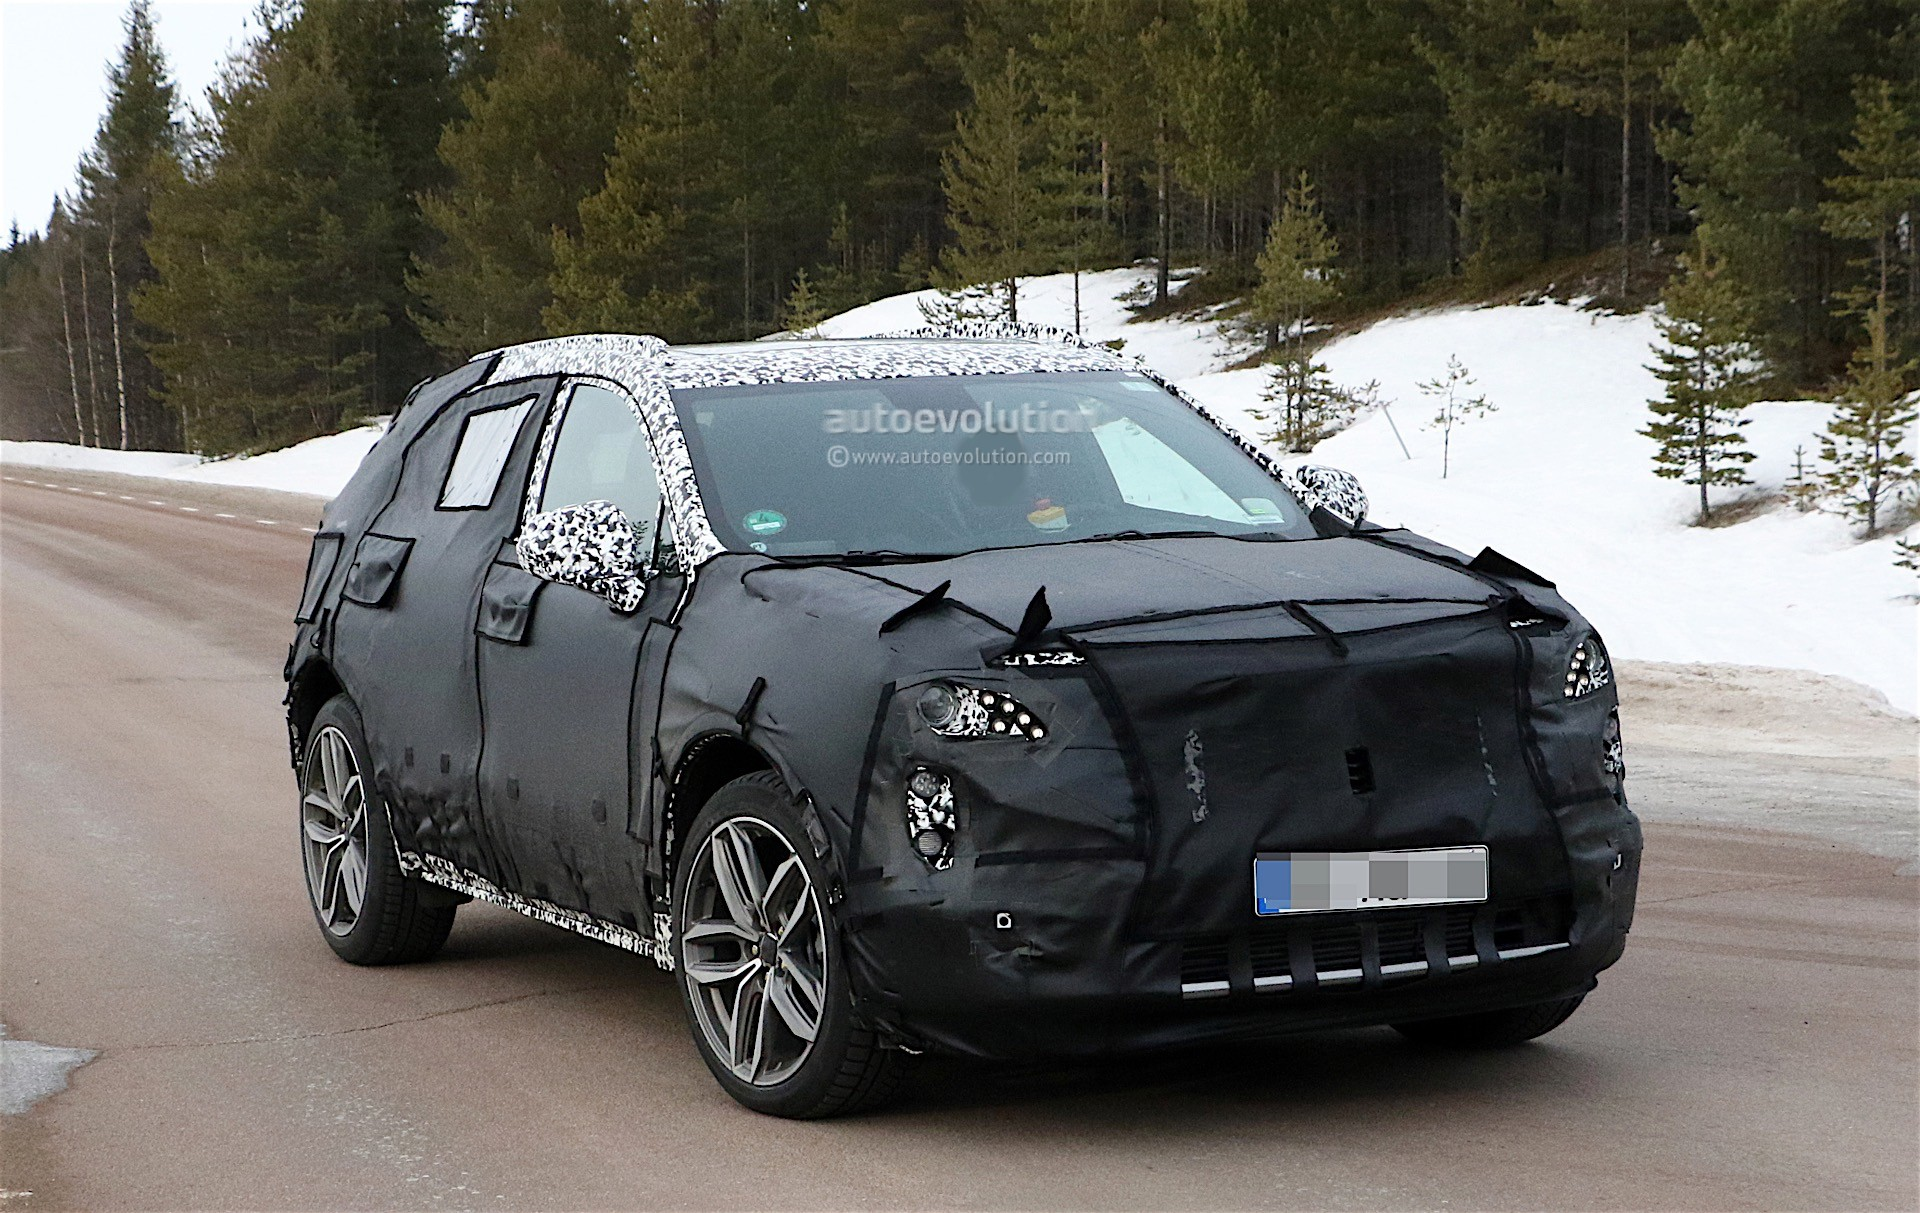 2019 Cadillac XT3 Spied Again, It's Still Massive For Its ...